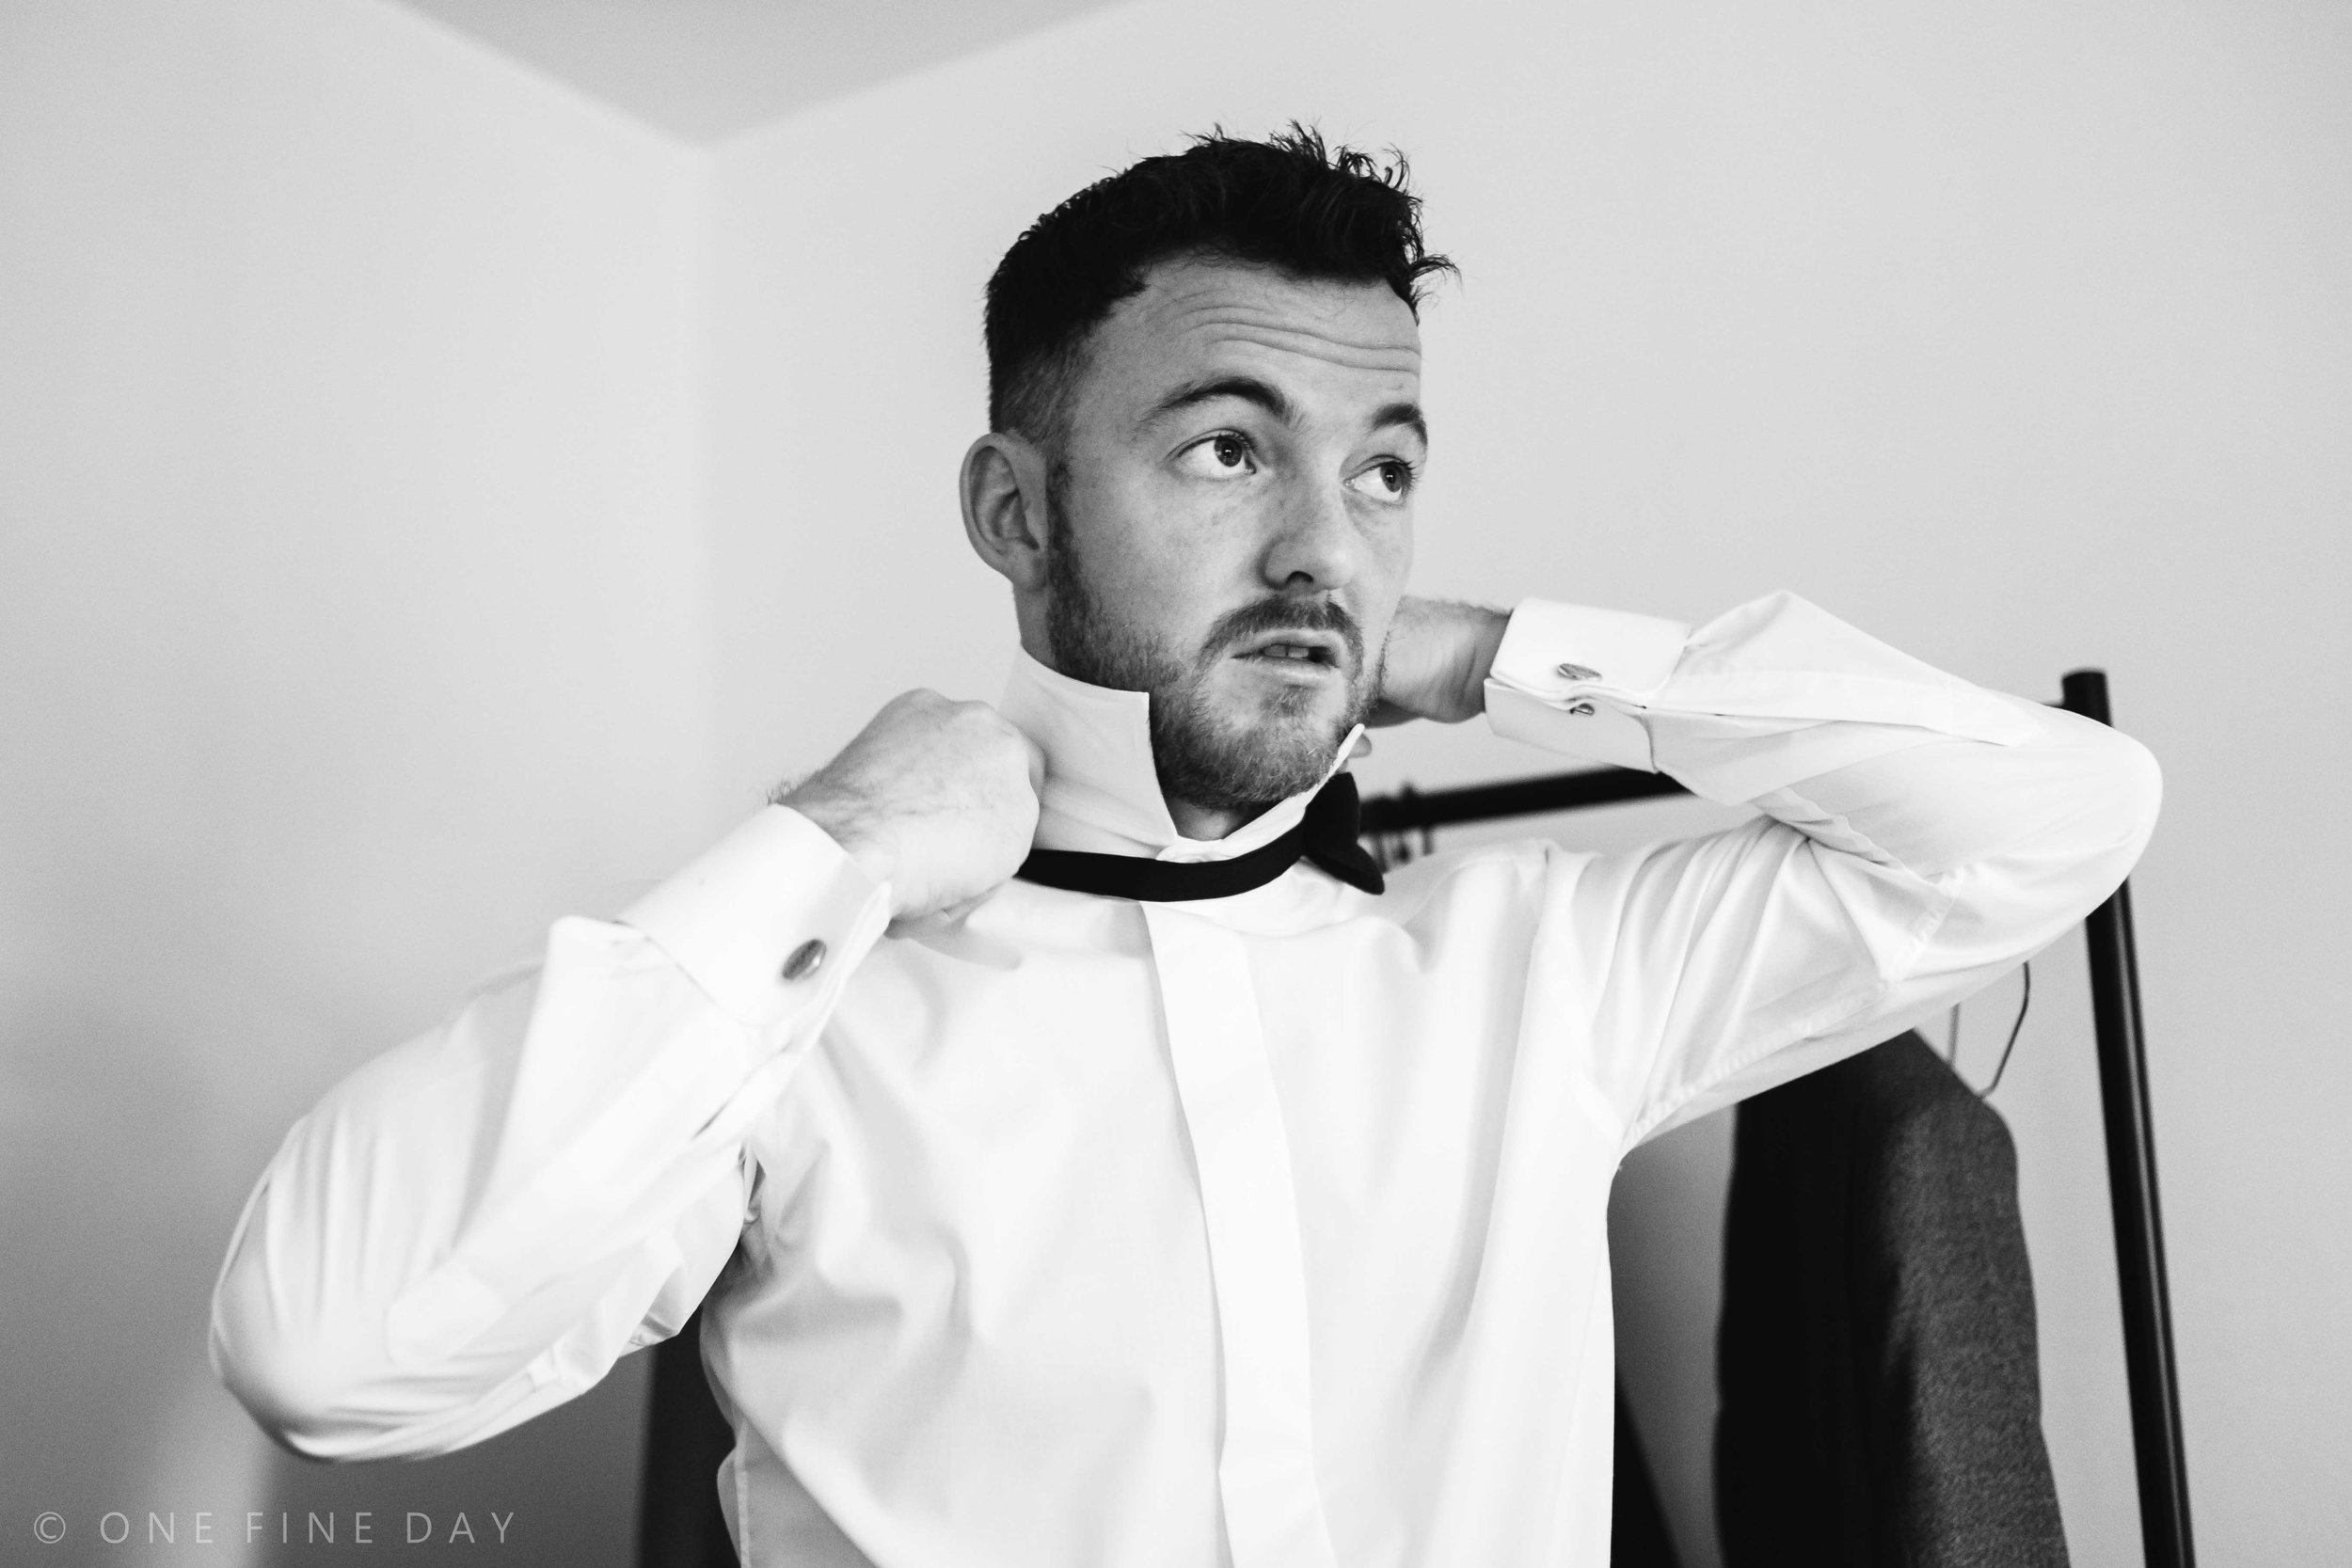 Black and white image of the groom on his wedding day